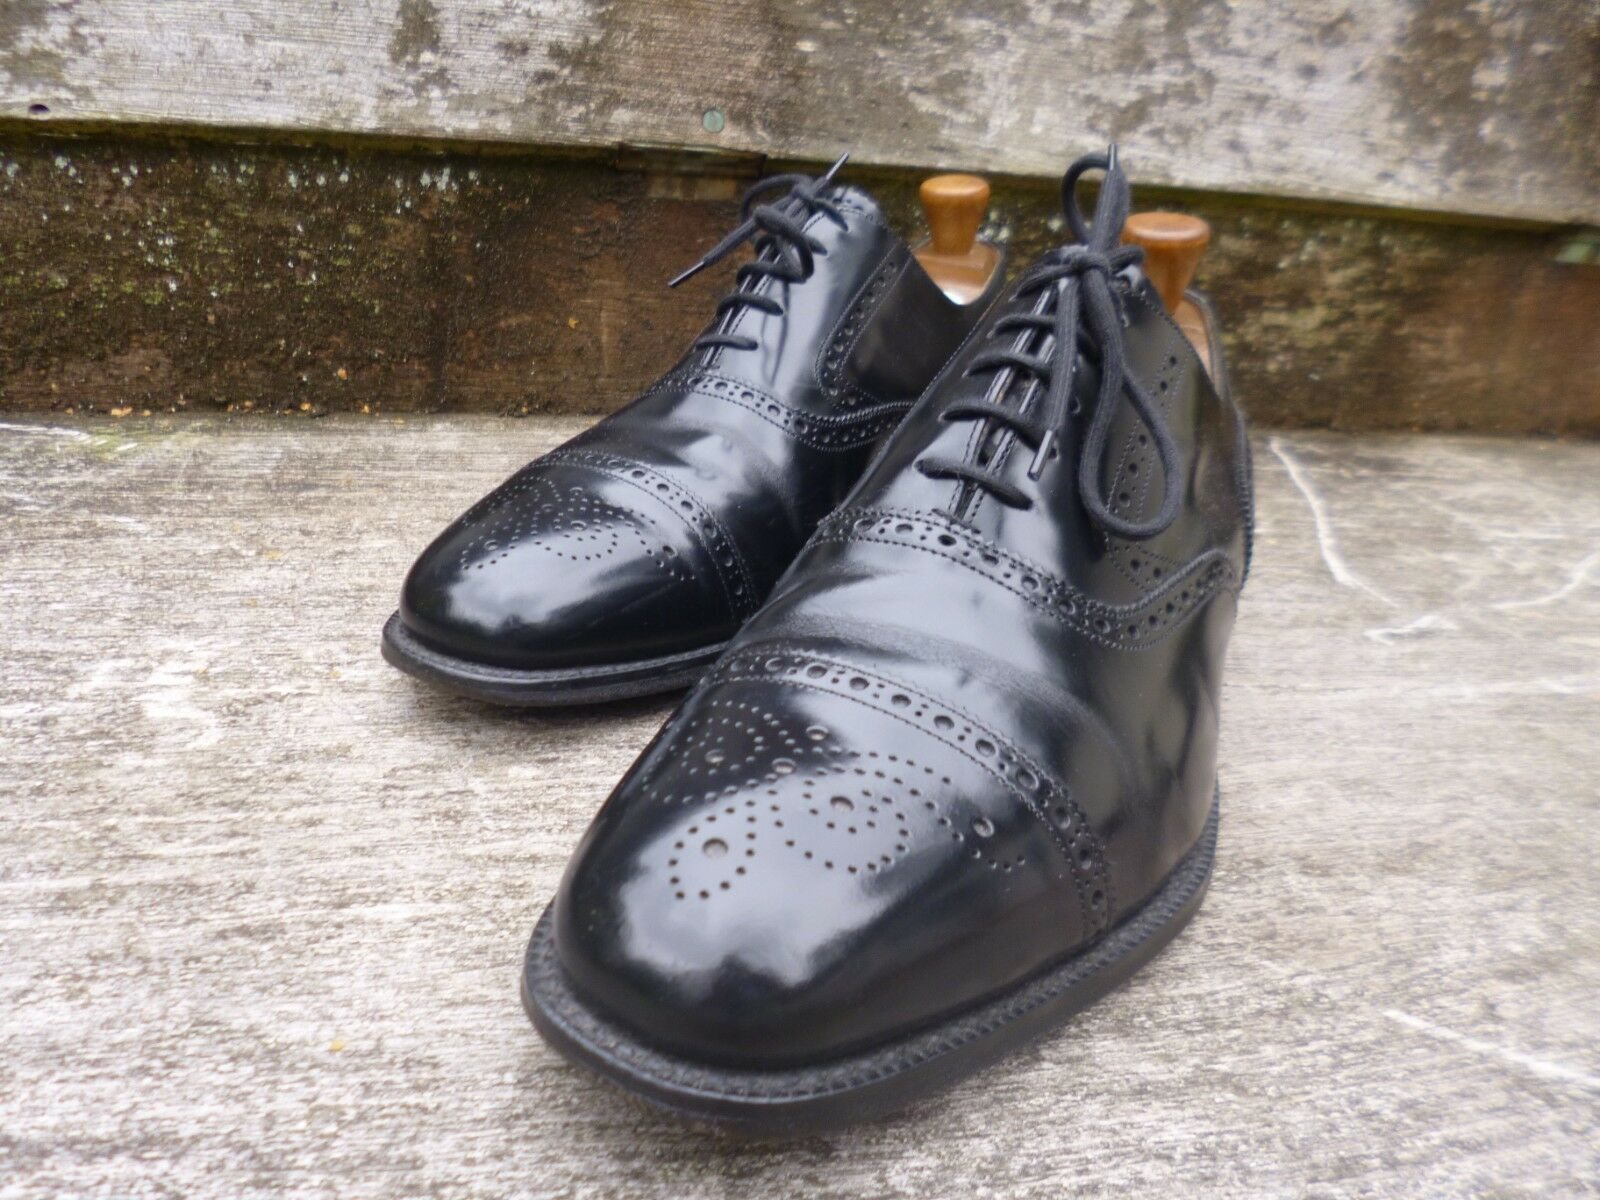 CHEANEY CHEANEY CHEANEY   CHURCH BROGUES – schwarz – UK 9.5 – EXCELLENT CONDITION cec65e